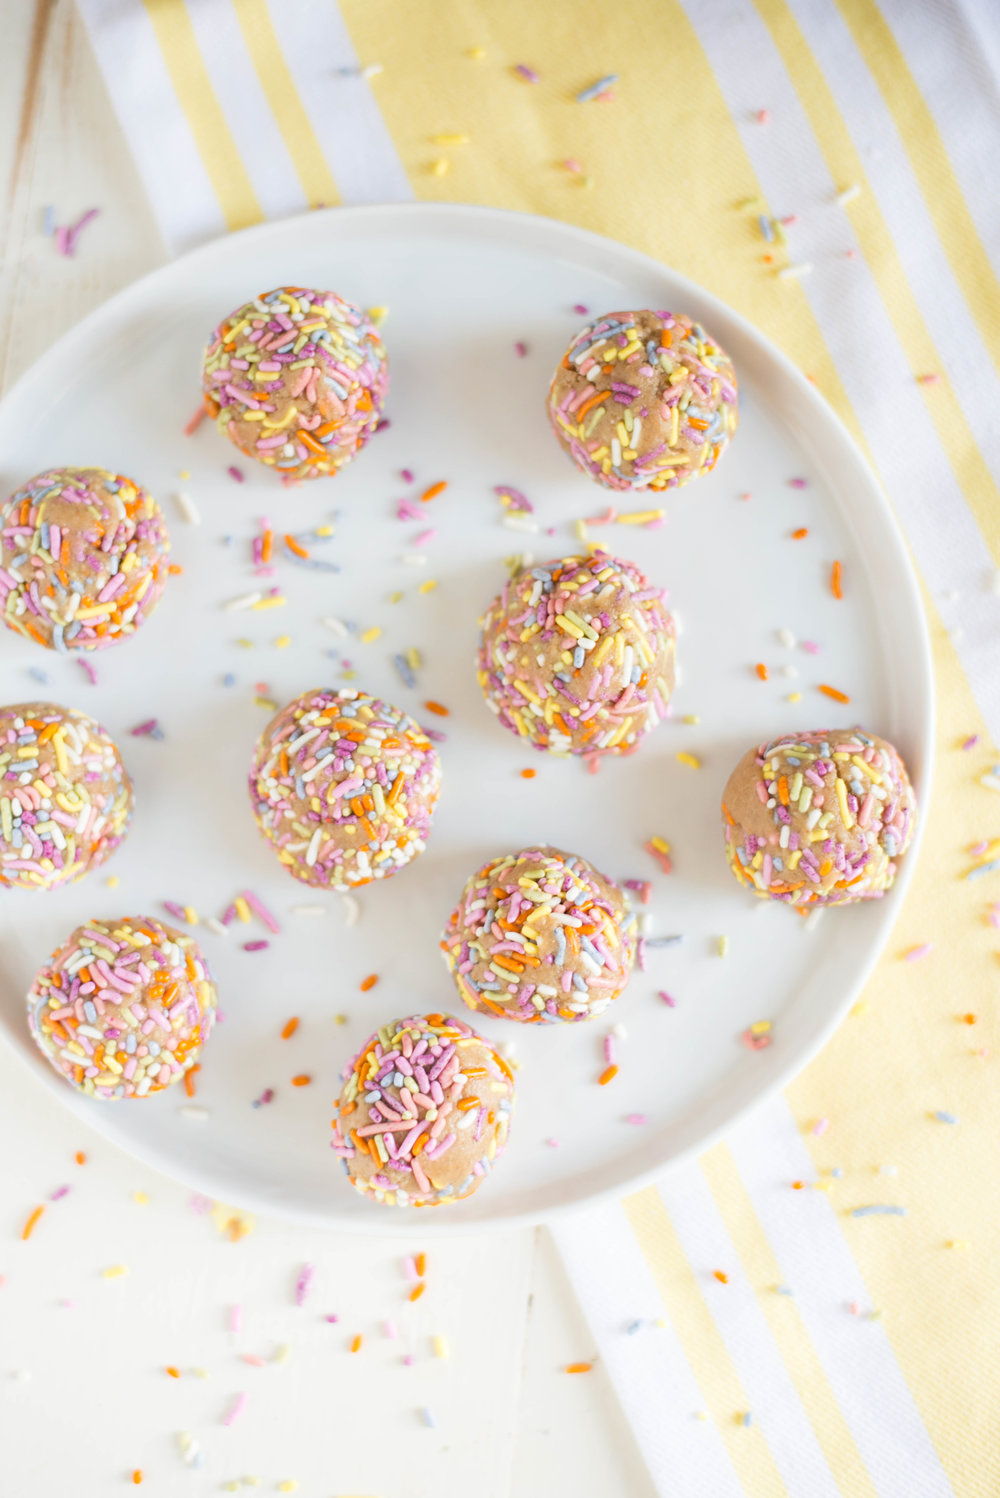 Irresistibly fun and totally delicious, One-Bowl Vanilla Cake Batter Bites are a naturally-sweetened, gluten-free, dairy-free treat to celebrate every day.